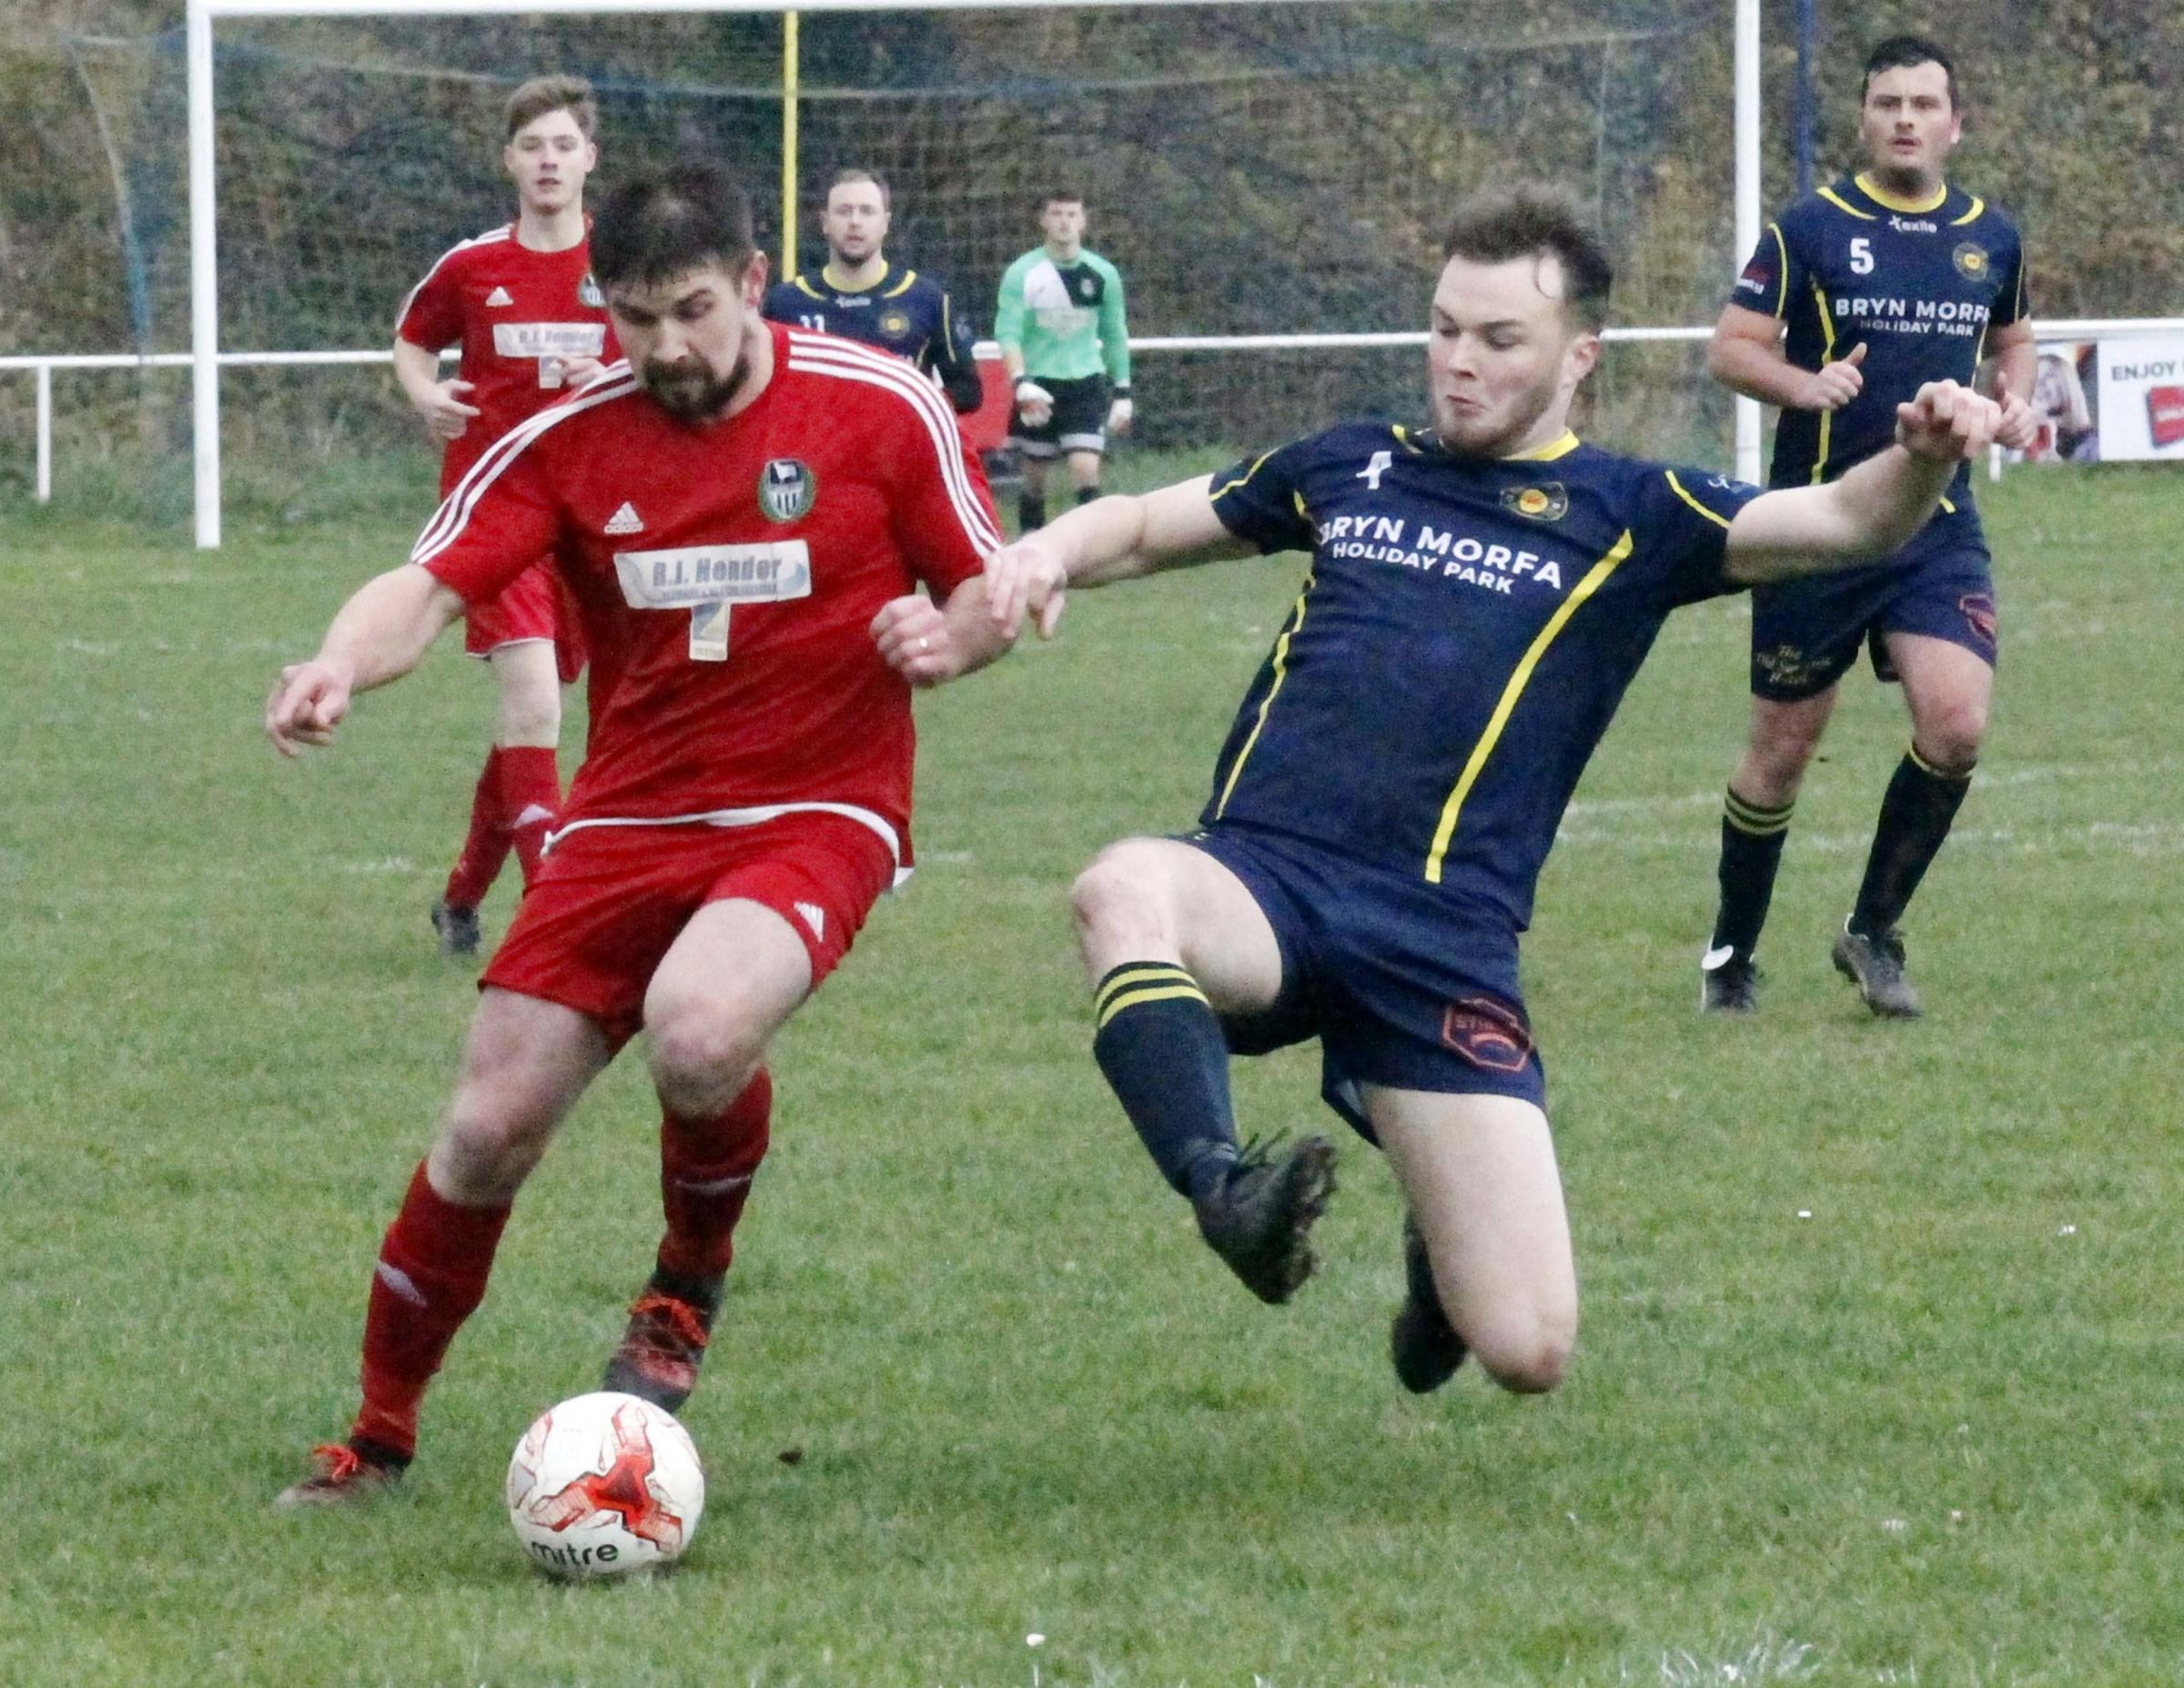 Llandudno Albion extended their lead at the top (Photo by Dave Thomas)